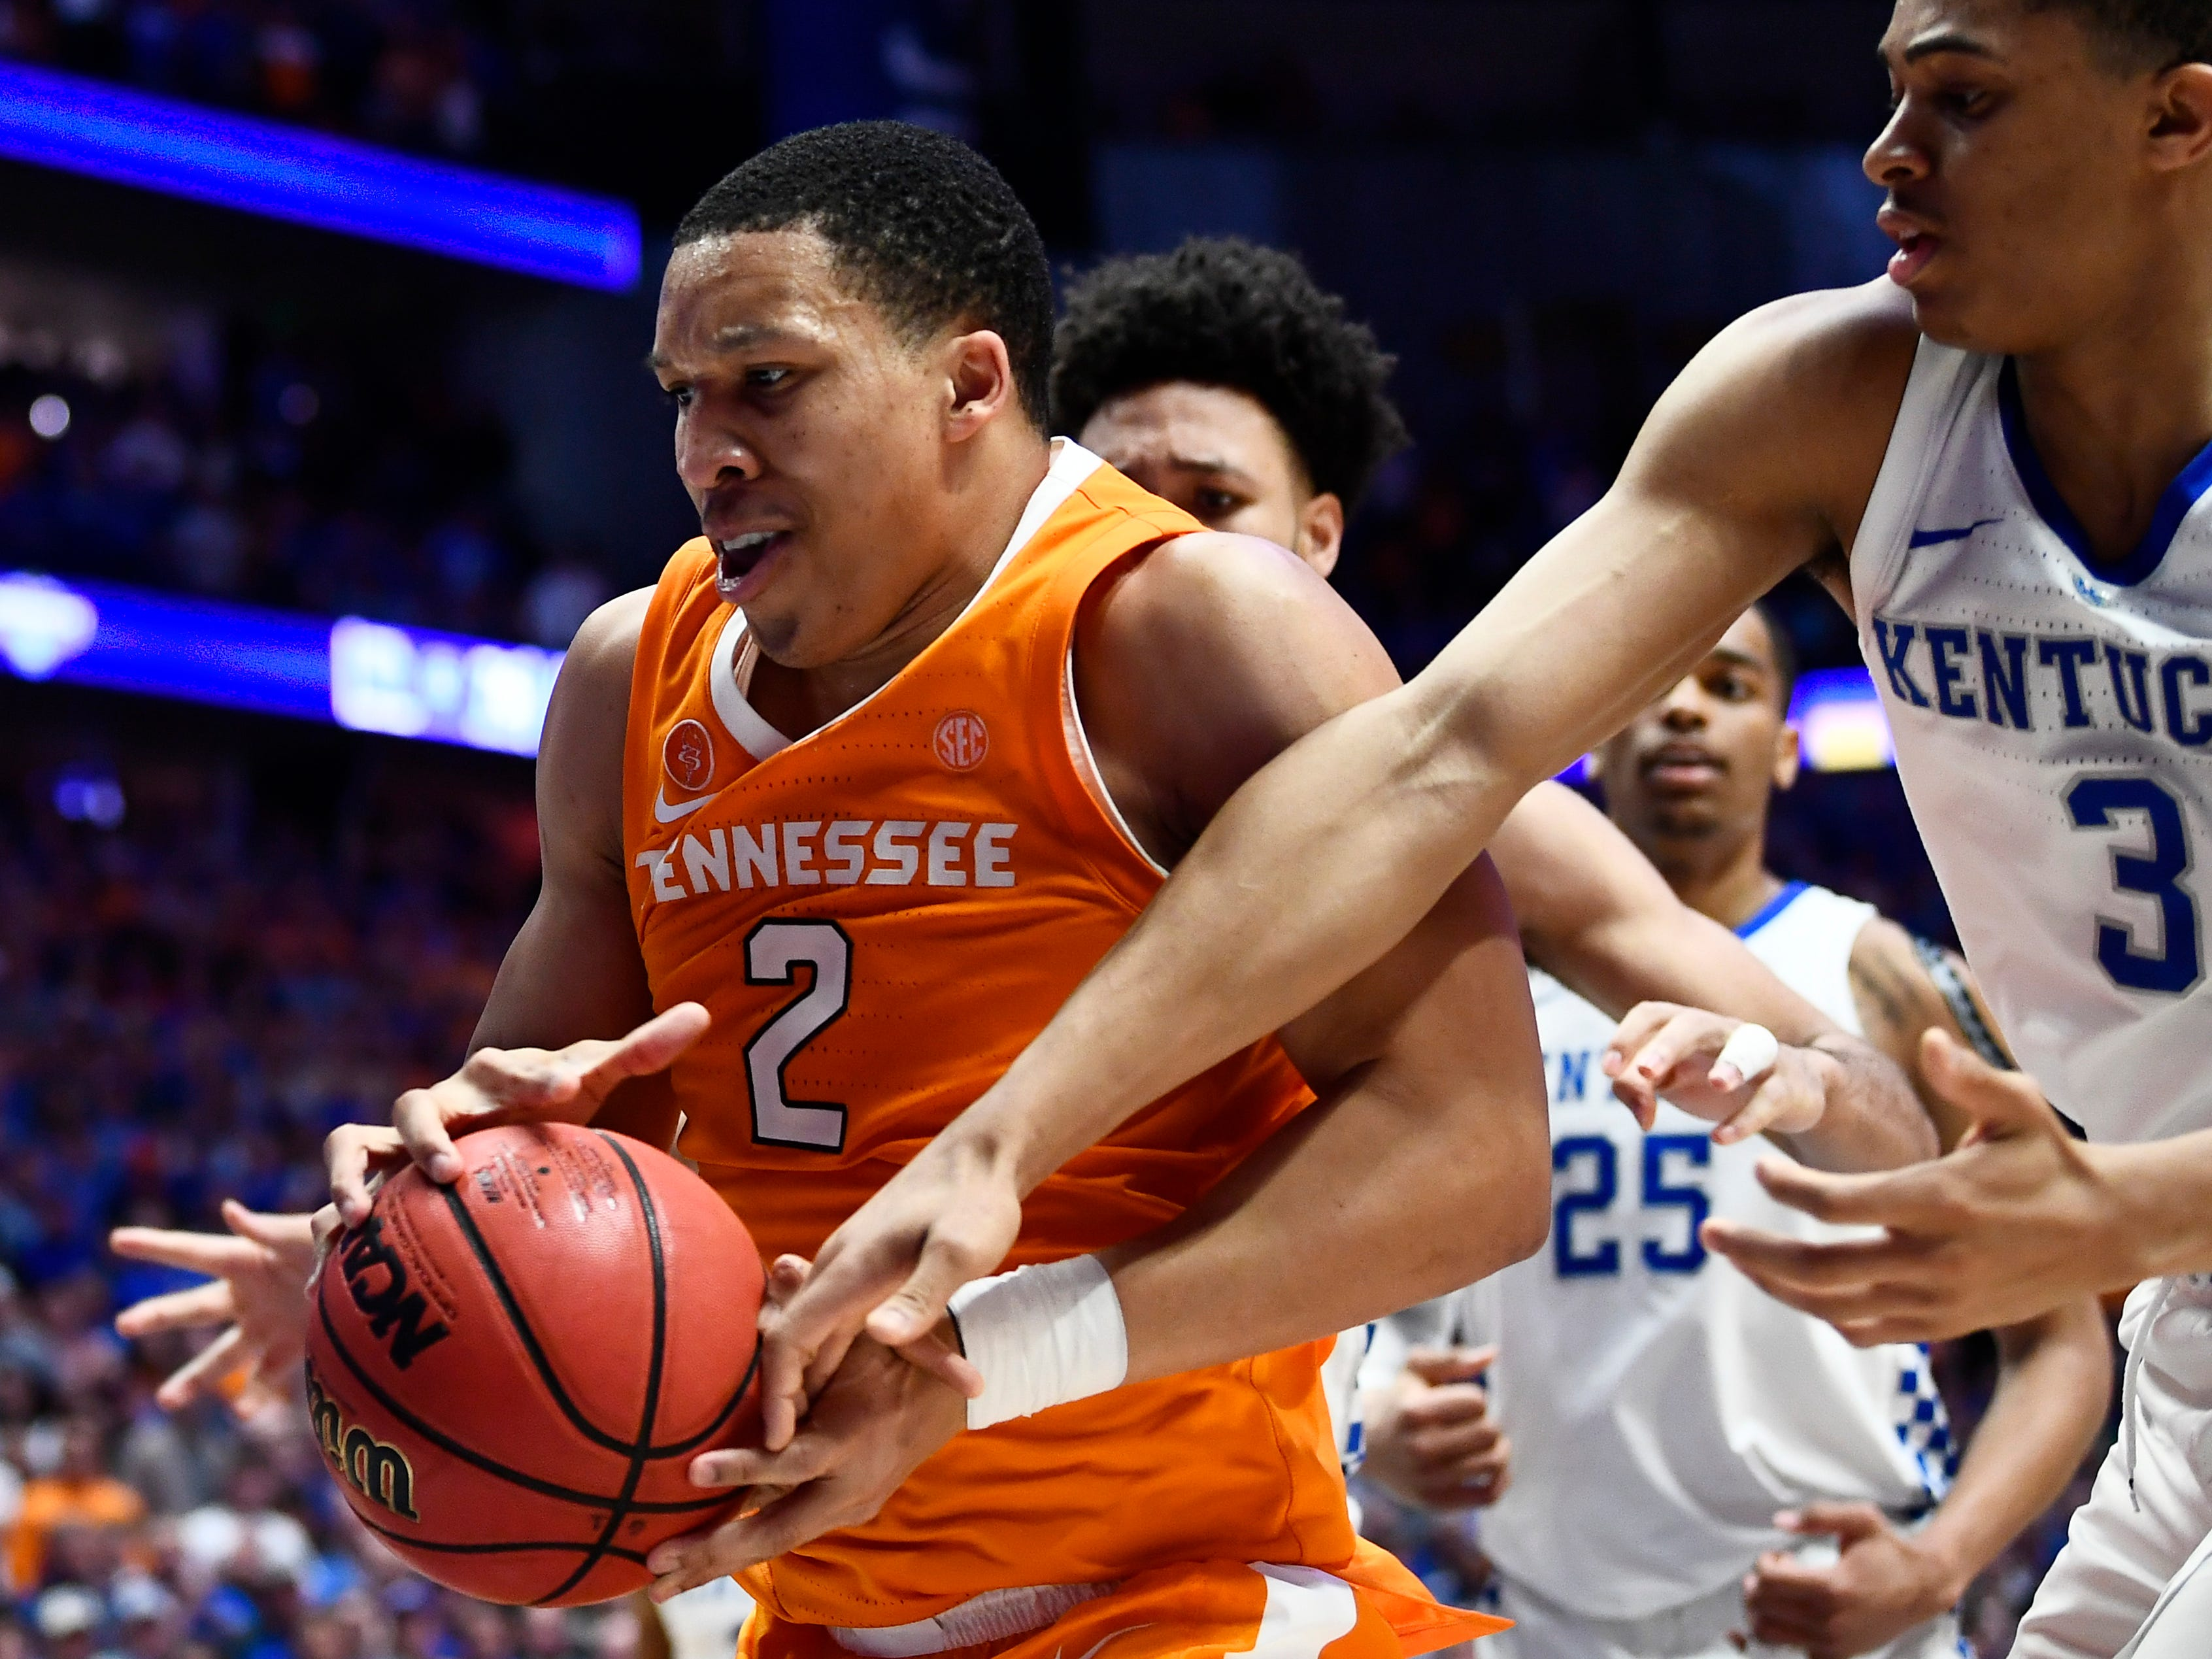 Tennessee forward Grant Williams (2) comes down with a rebound defended by Kentucky guard Keldon Johnson (3) during the second half of the SEC Men's Basketball Tournament game at Bridgestone Arena in Nashville, Tenn., Saturday, March 16, 2019.